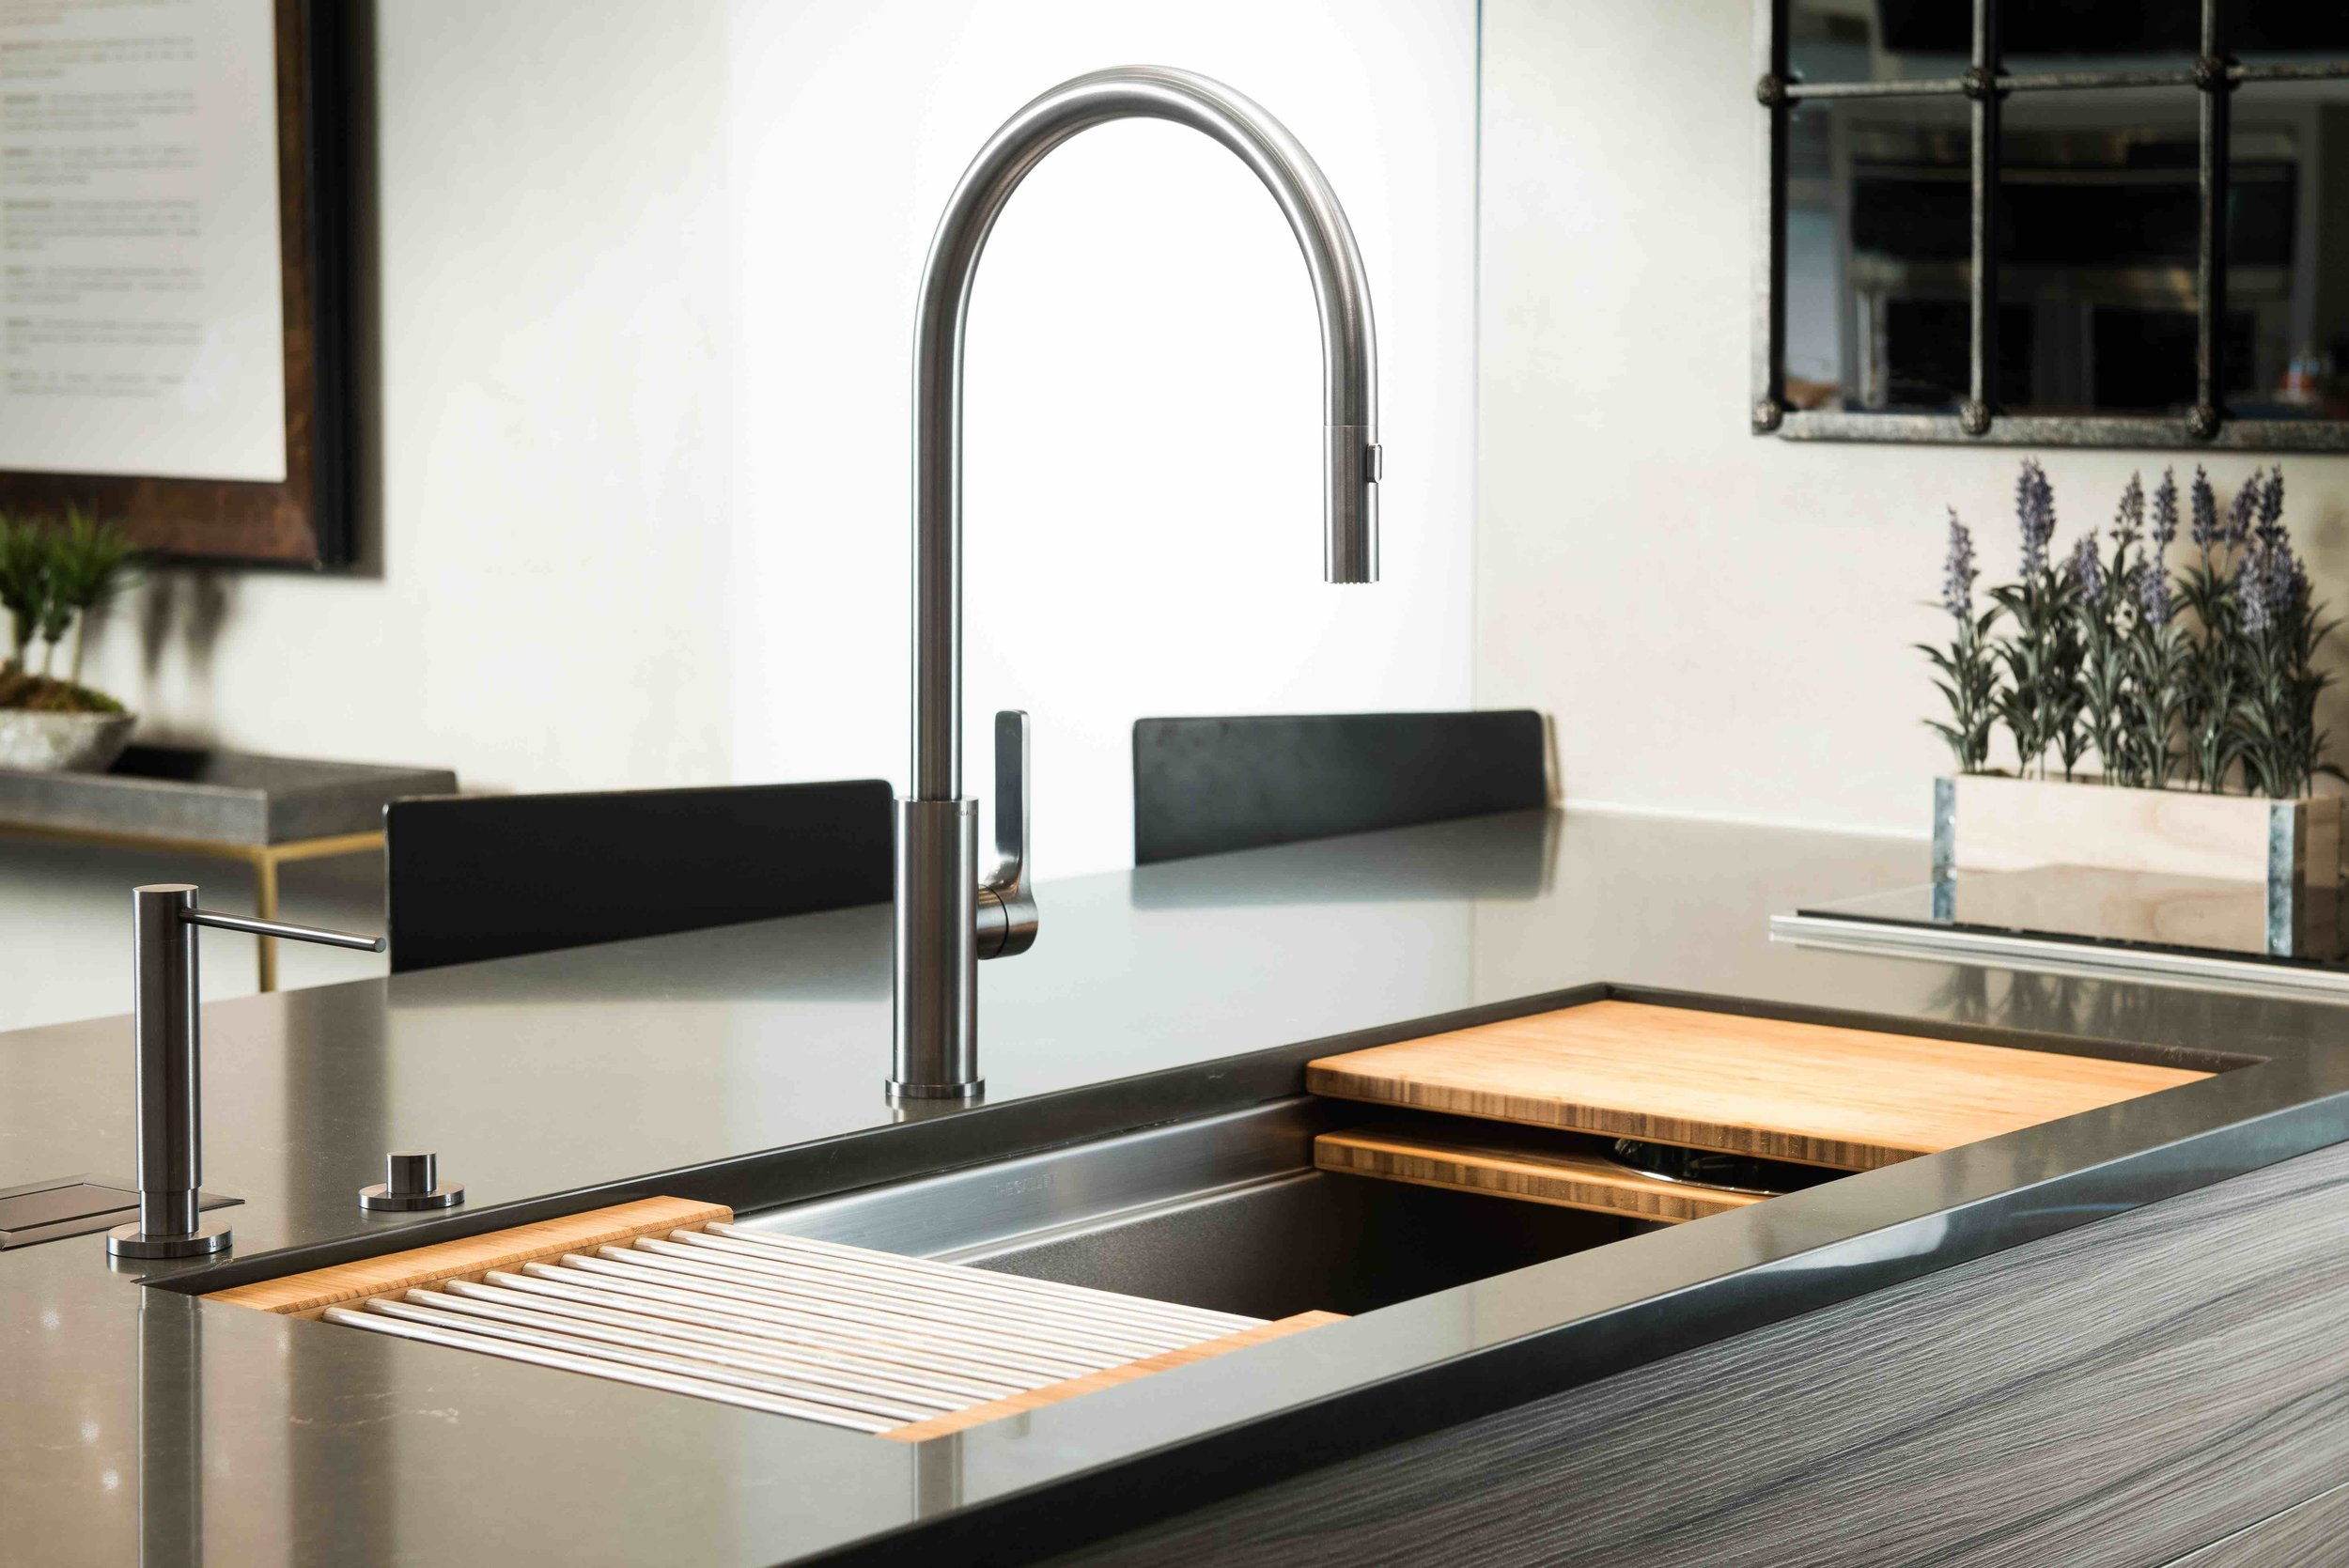 The Galley Tap -